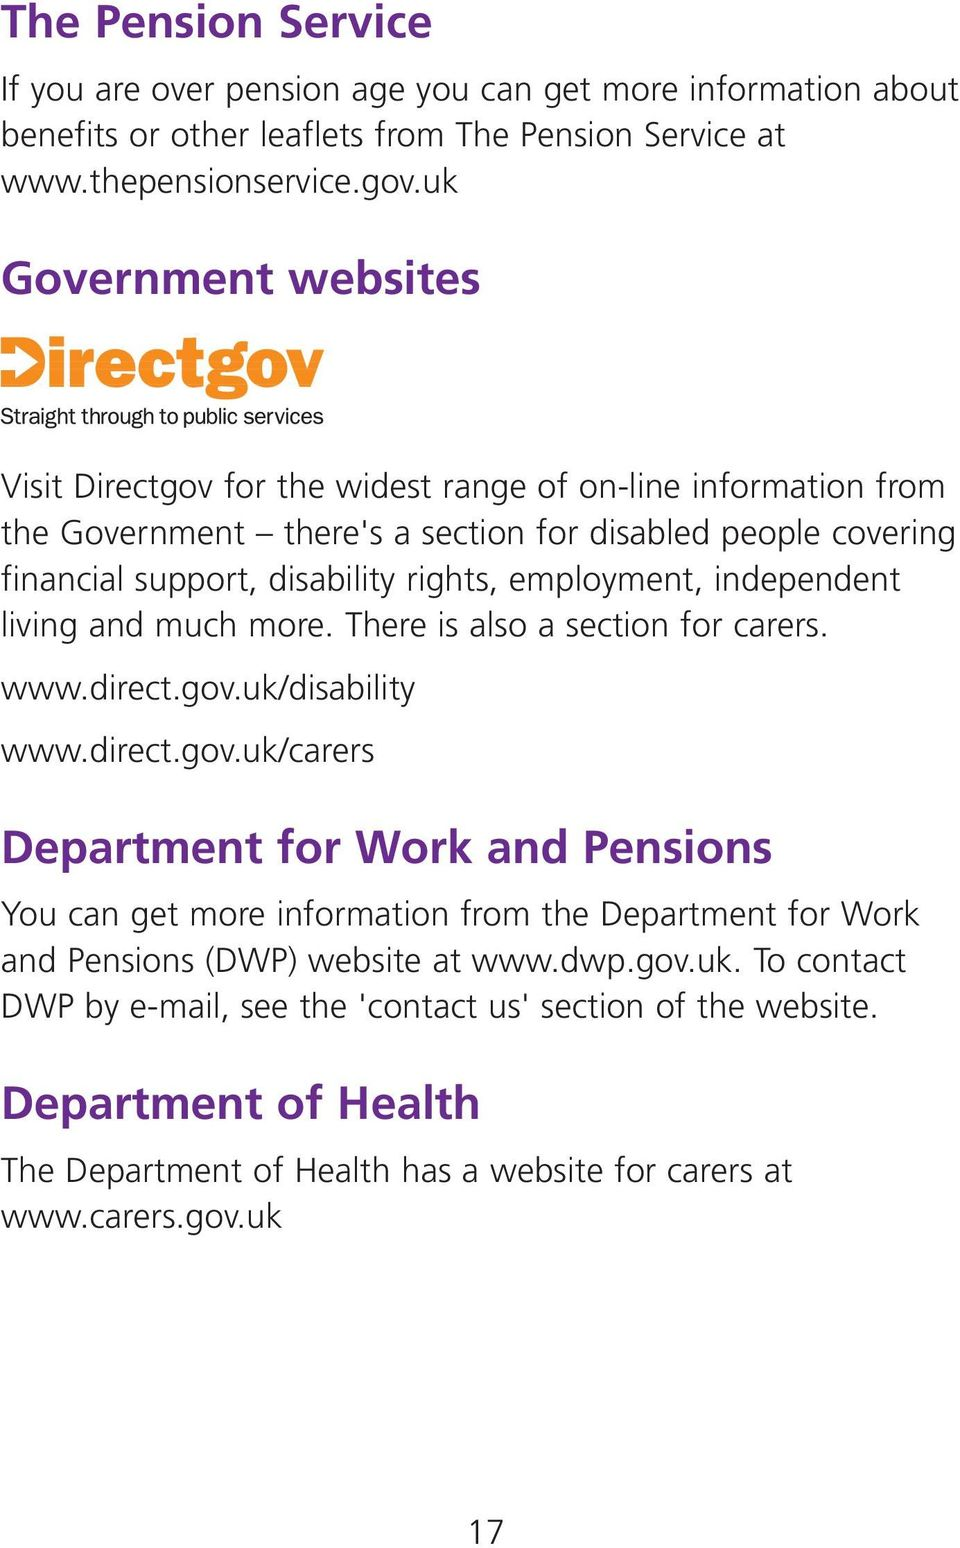 employment, independent living and much more. There is also a section for carers. www.direct.gov.